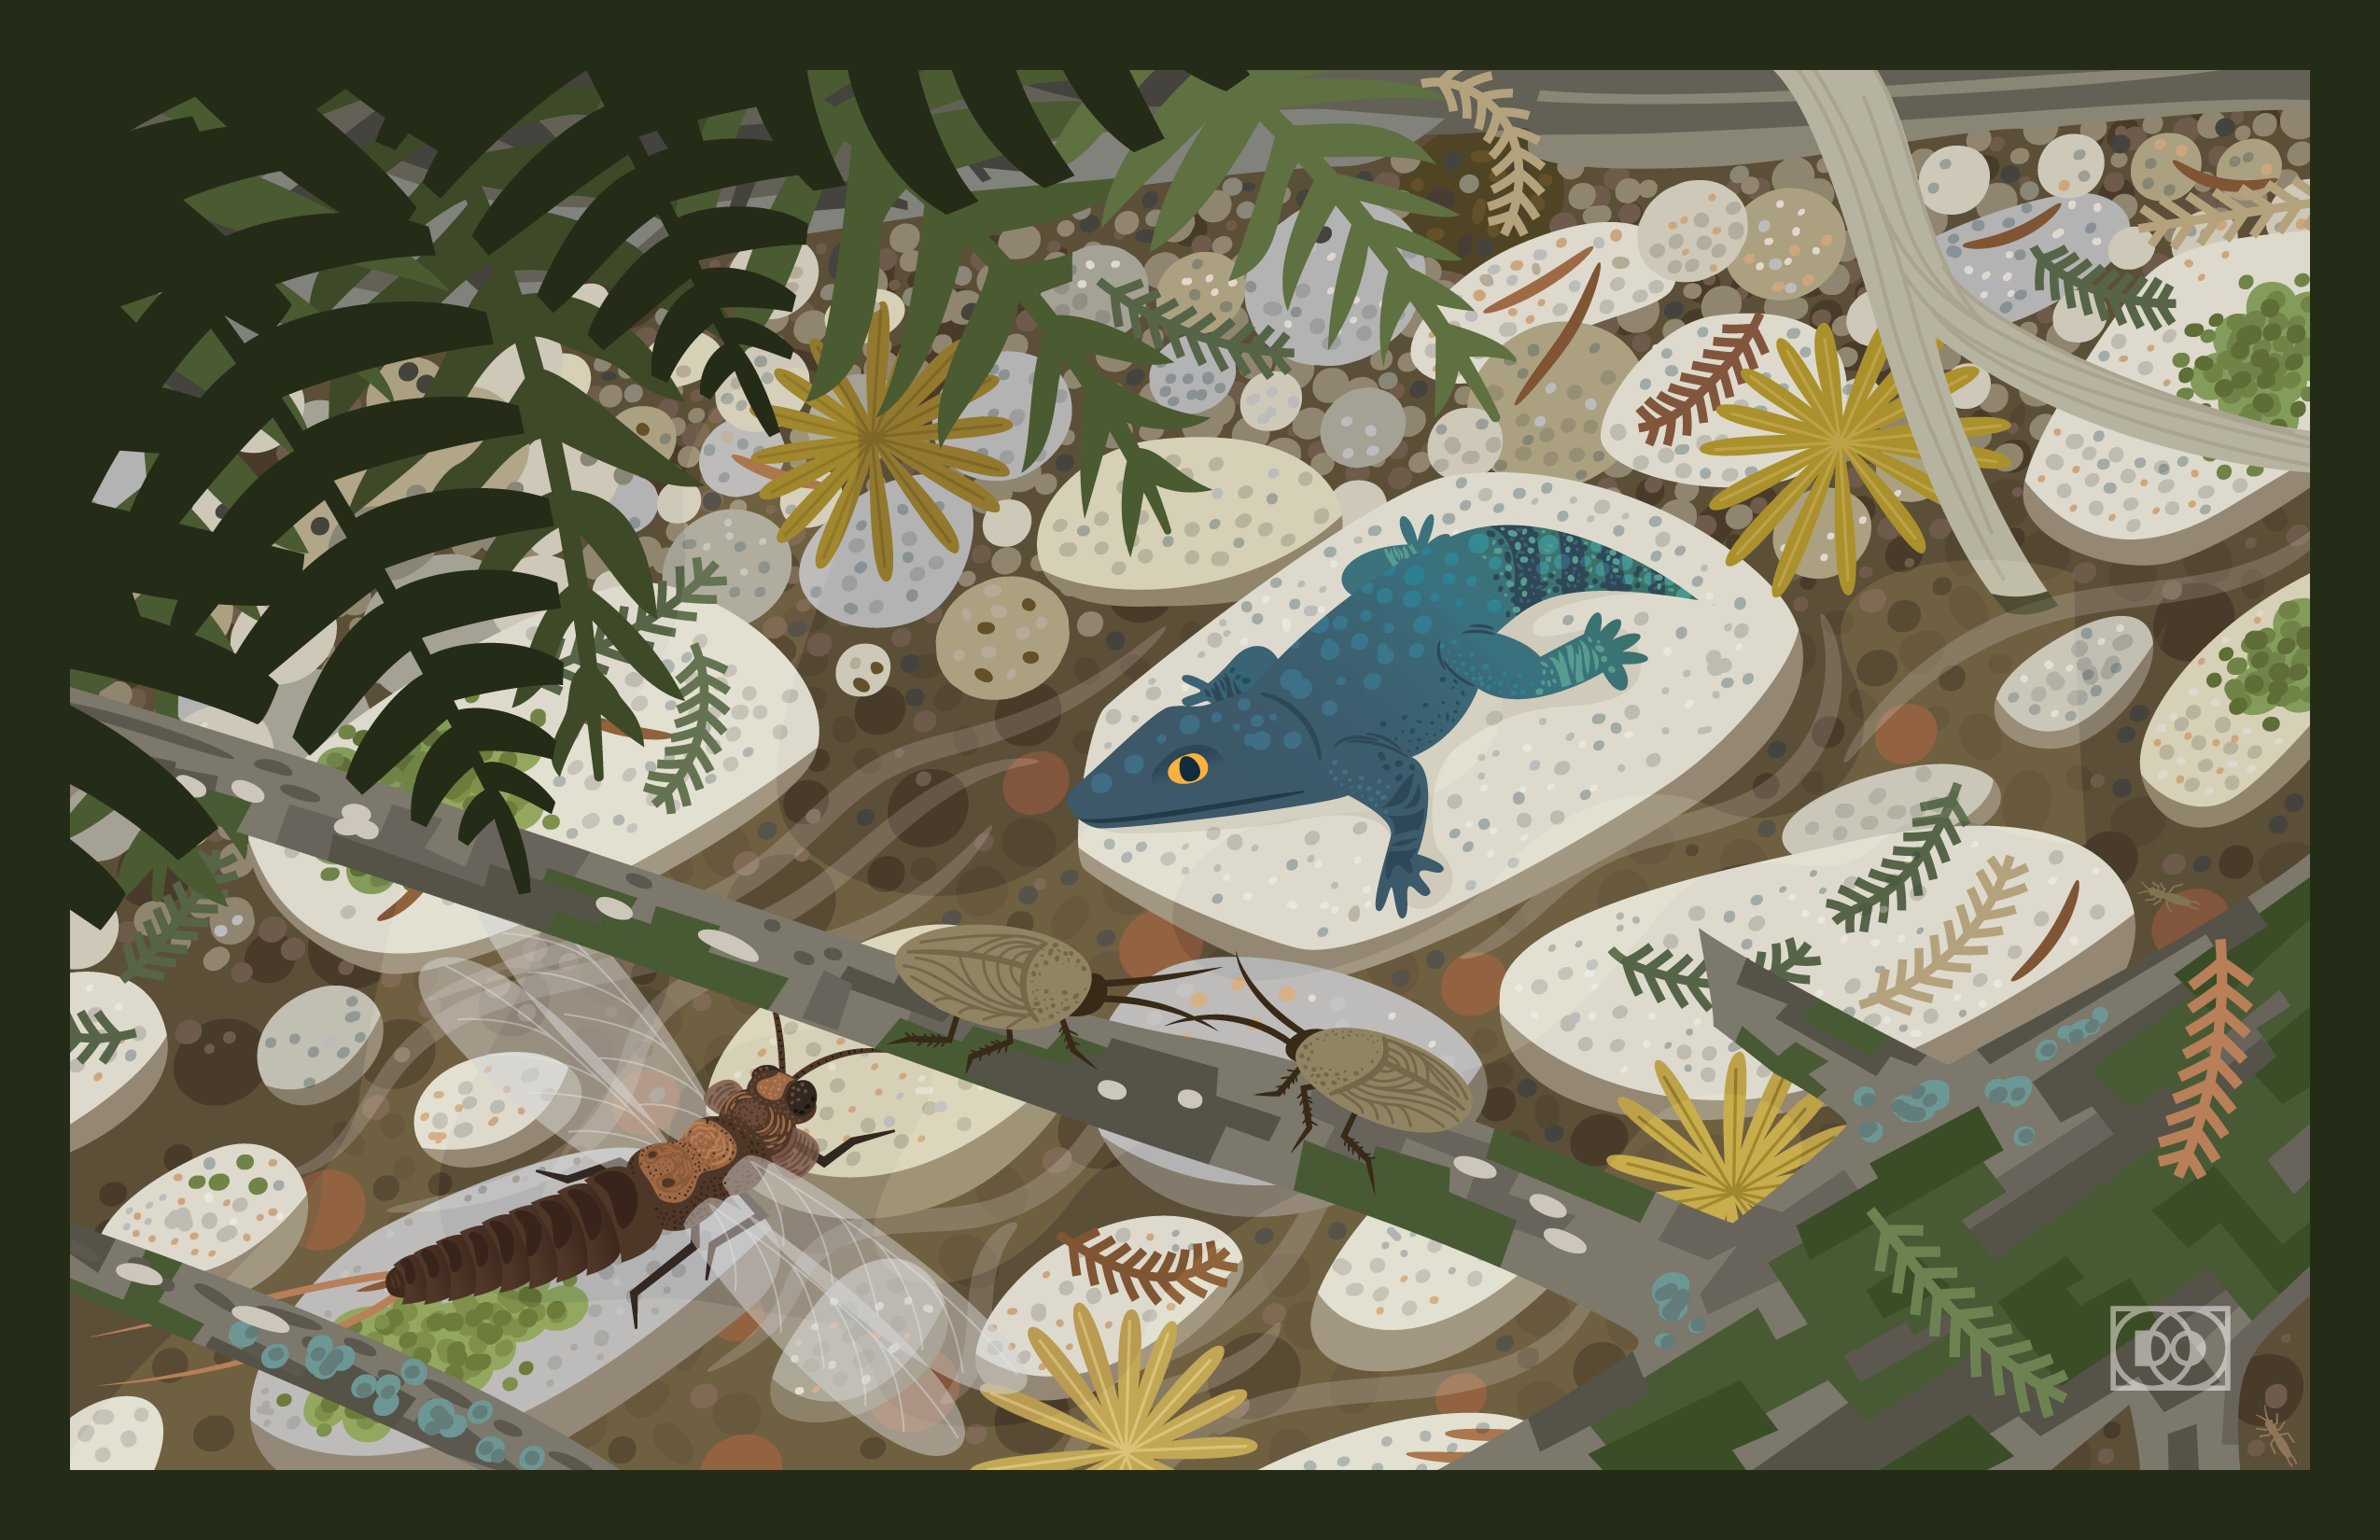 A vector paleoart scene of a creek bed in the Permian Bromacker ecosystem of Germany, featuring a paleodictyoperid insect, roachoids, and the dissorophoid temnospondyl Tambachia